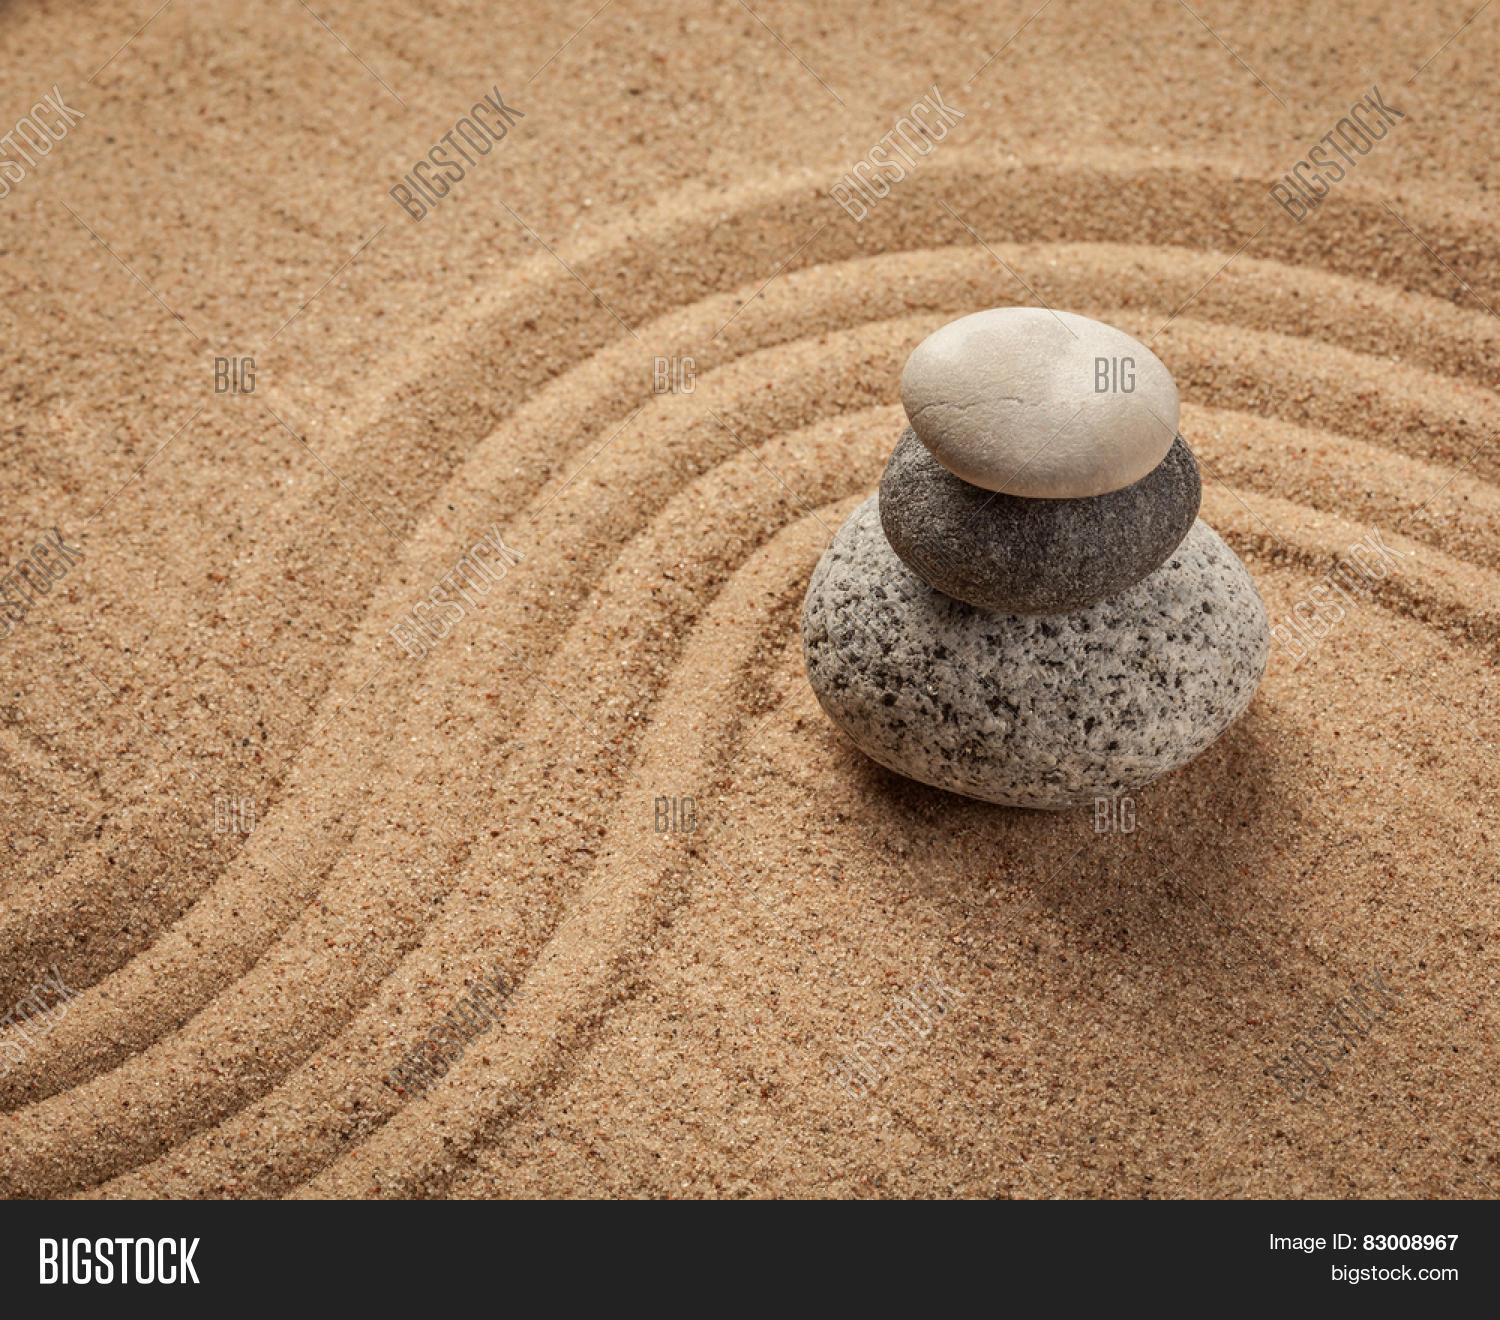 Japanese Zen Stone Image & Photo (Free Trial) | Bigstock